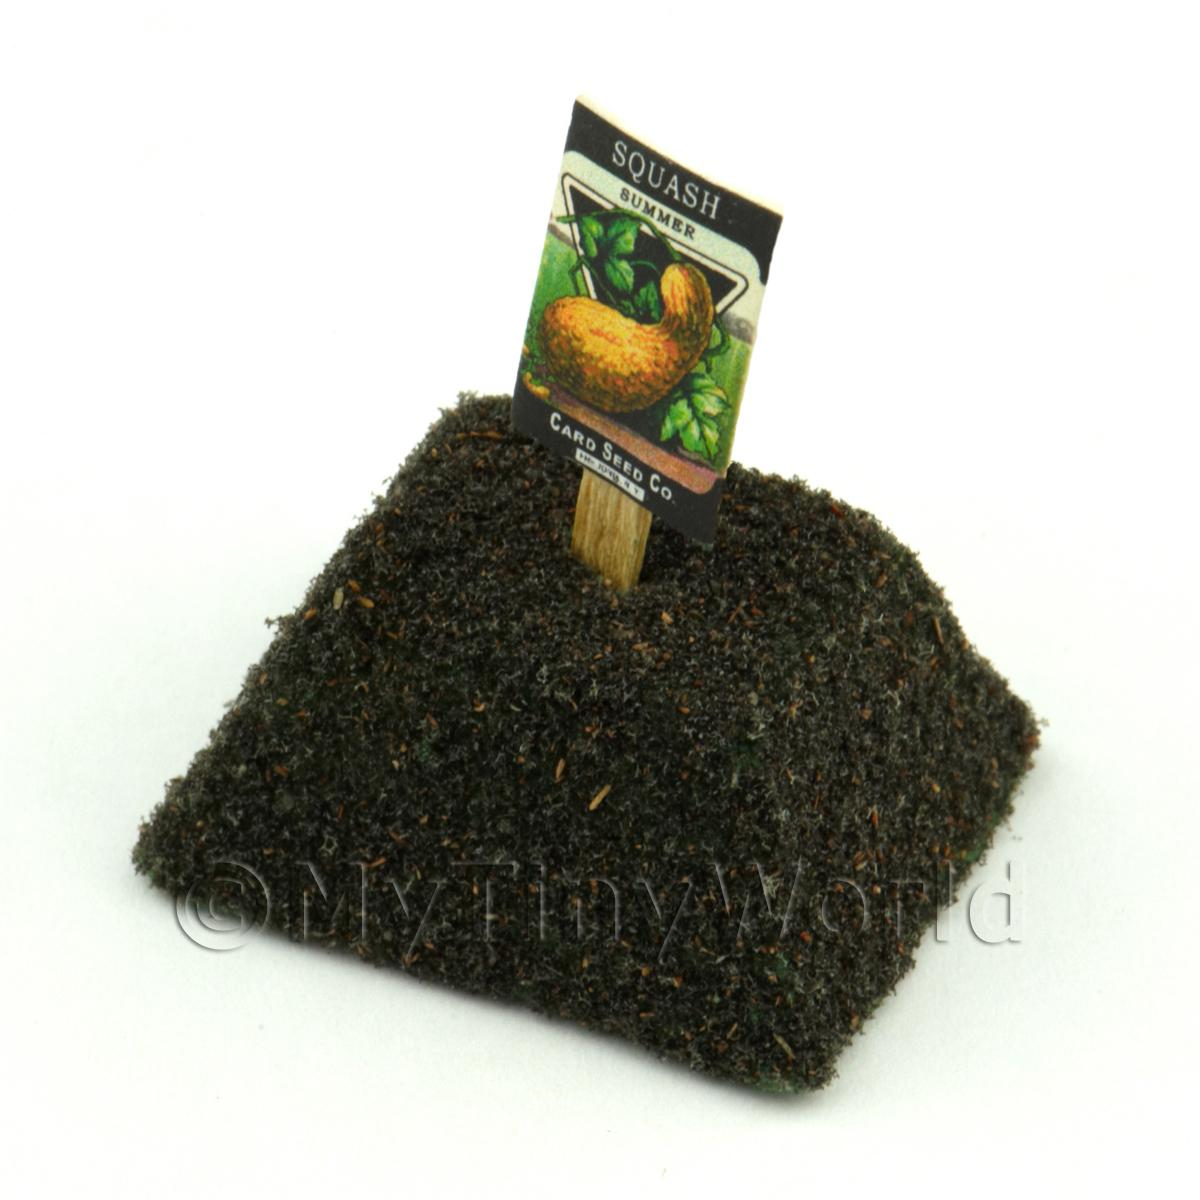 Dolls House Miniature Summer Squash Seed Packet With A Stick